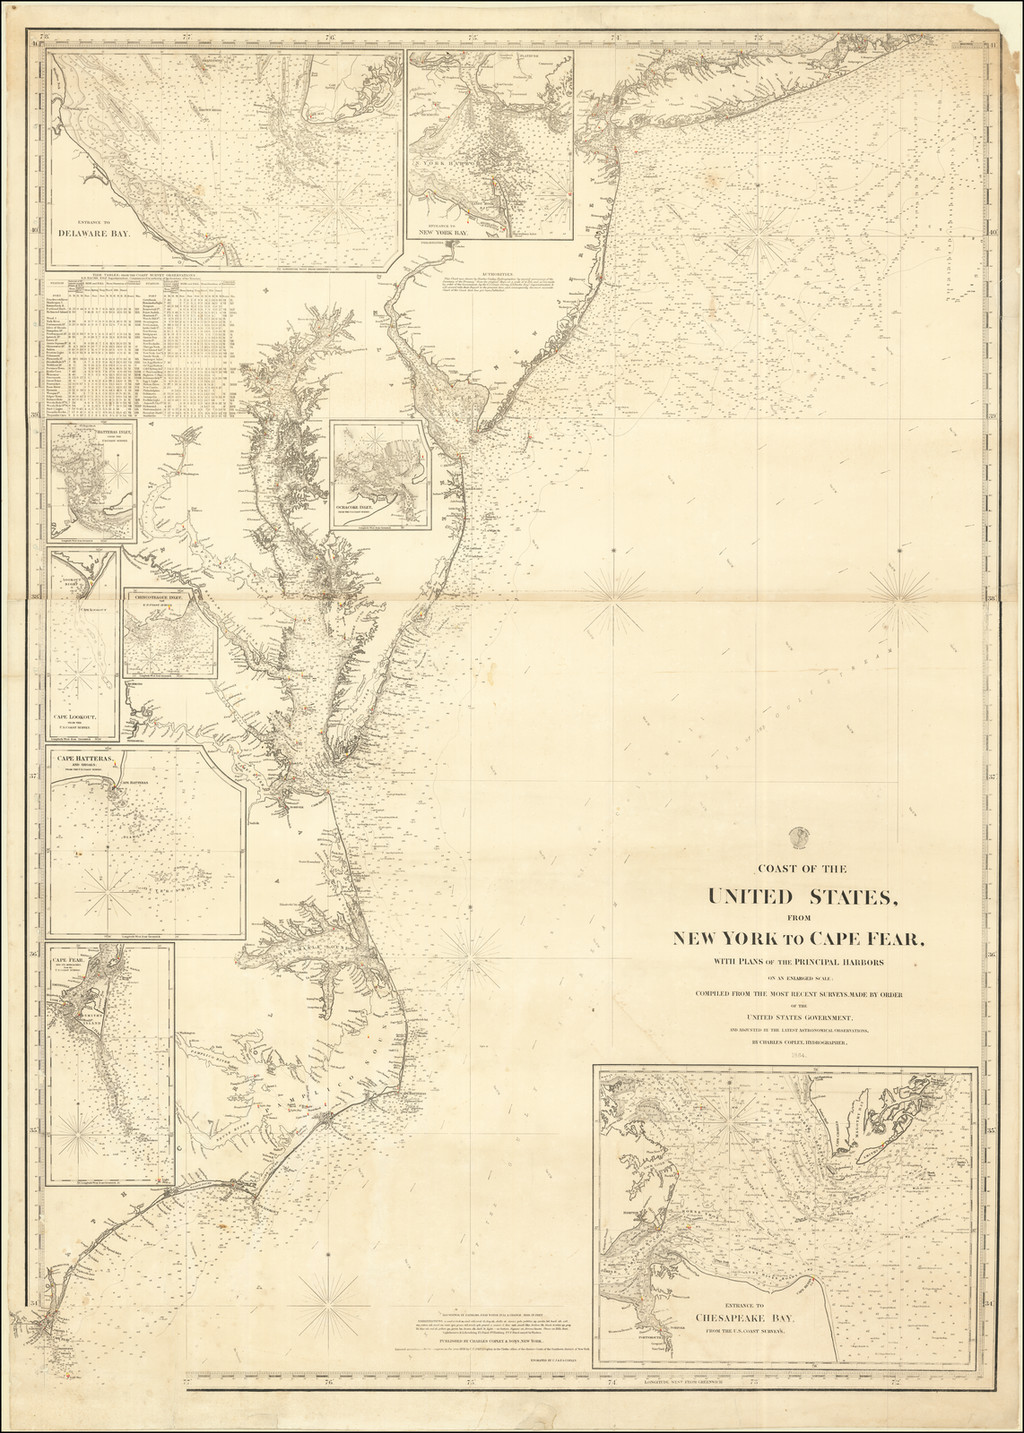 Coast of the United States From New York to Cape Fear, with Plans of the Principal Harbors on an enlarged scale:  . . . 1864 By Charles Copley